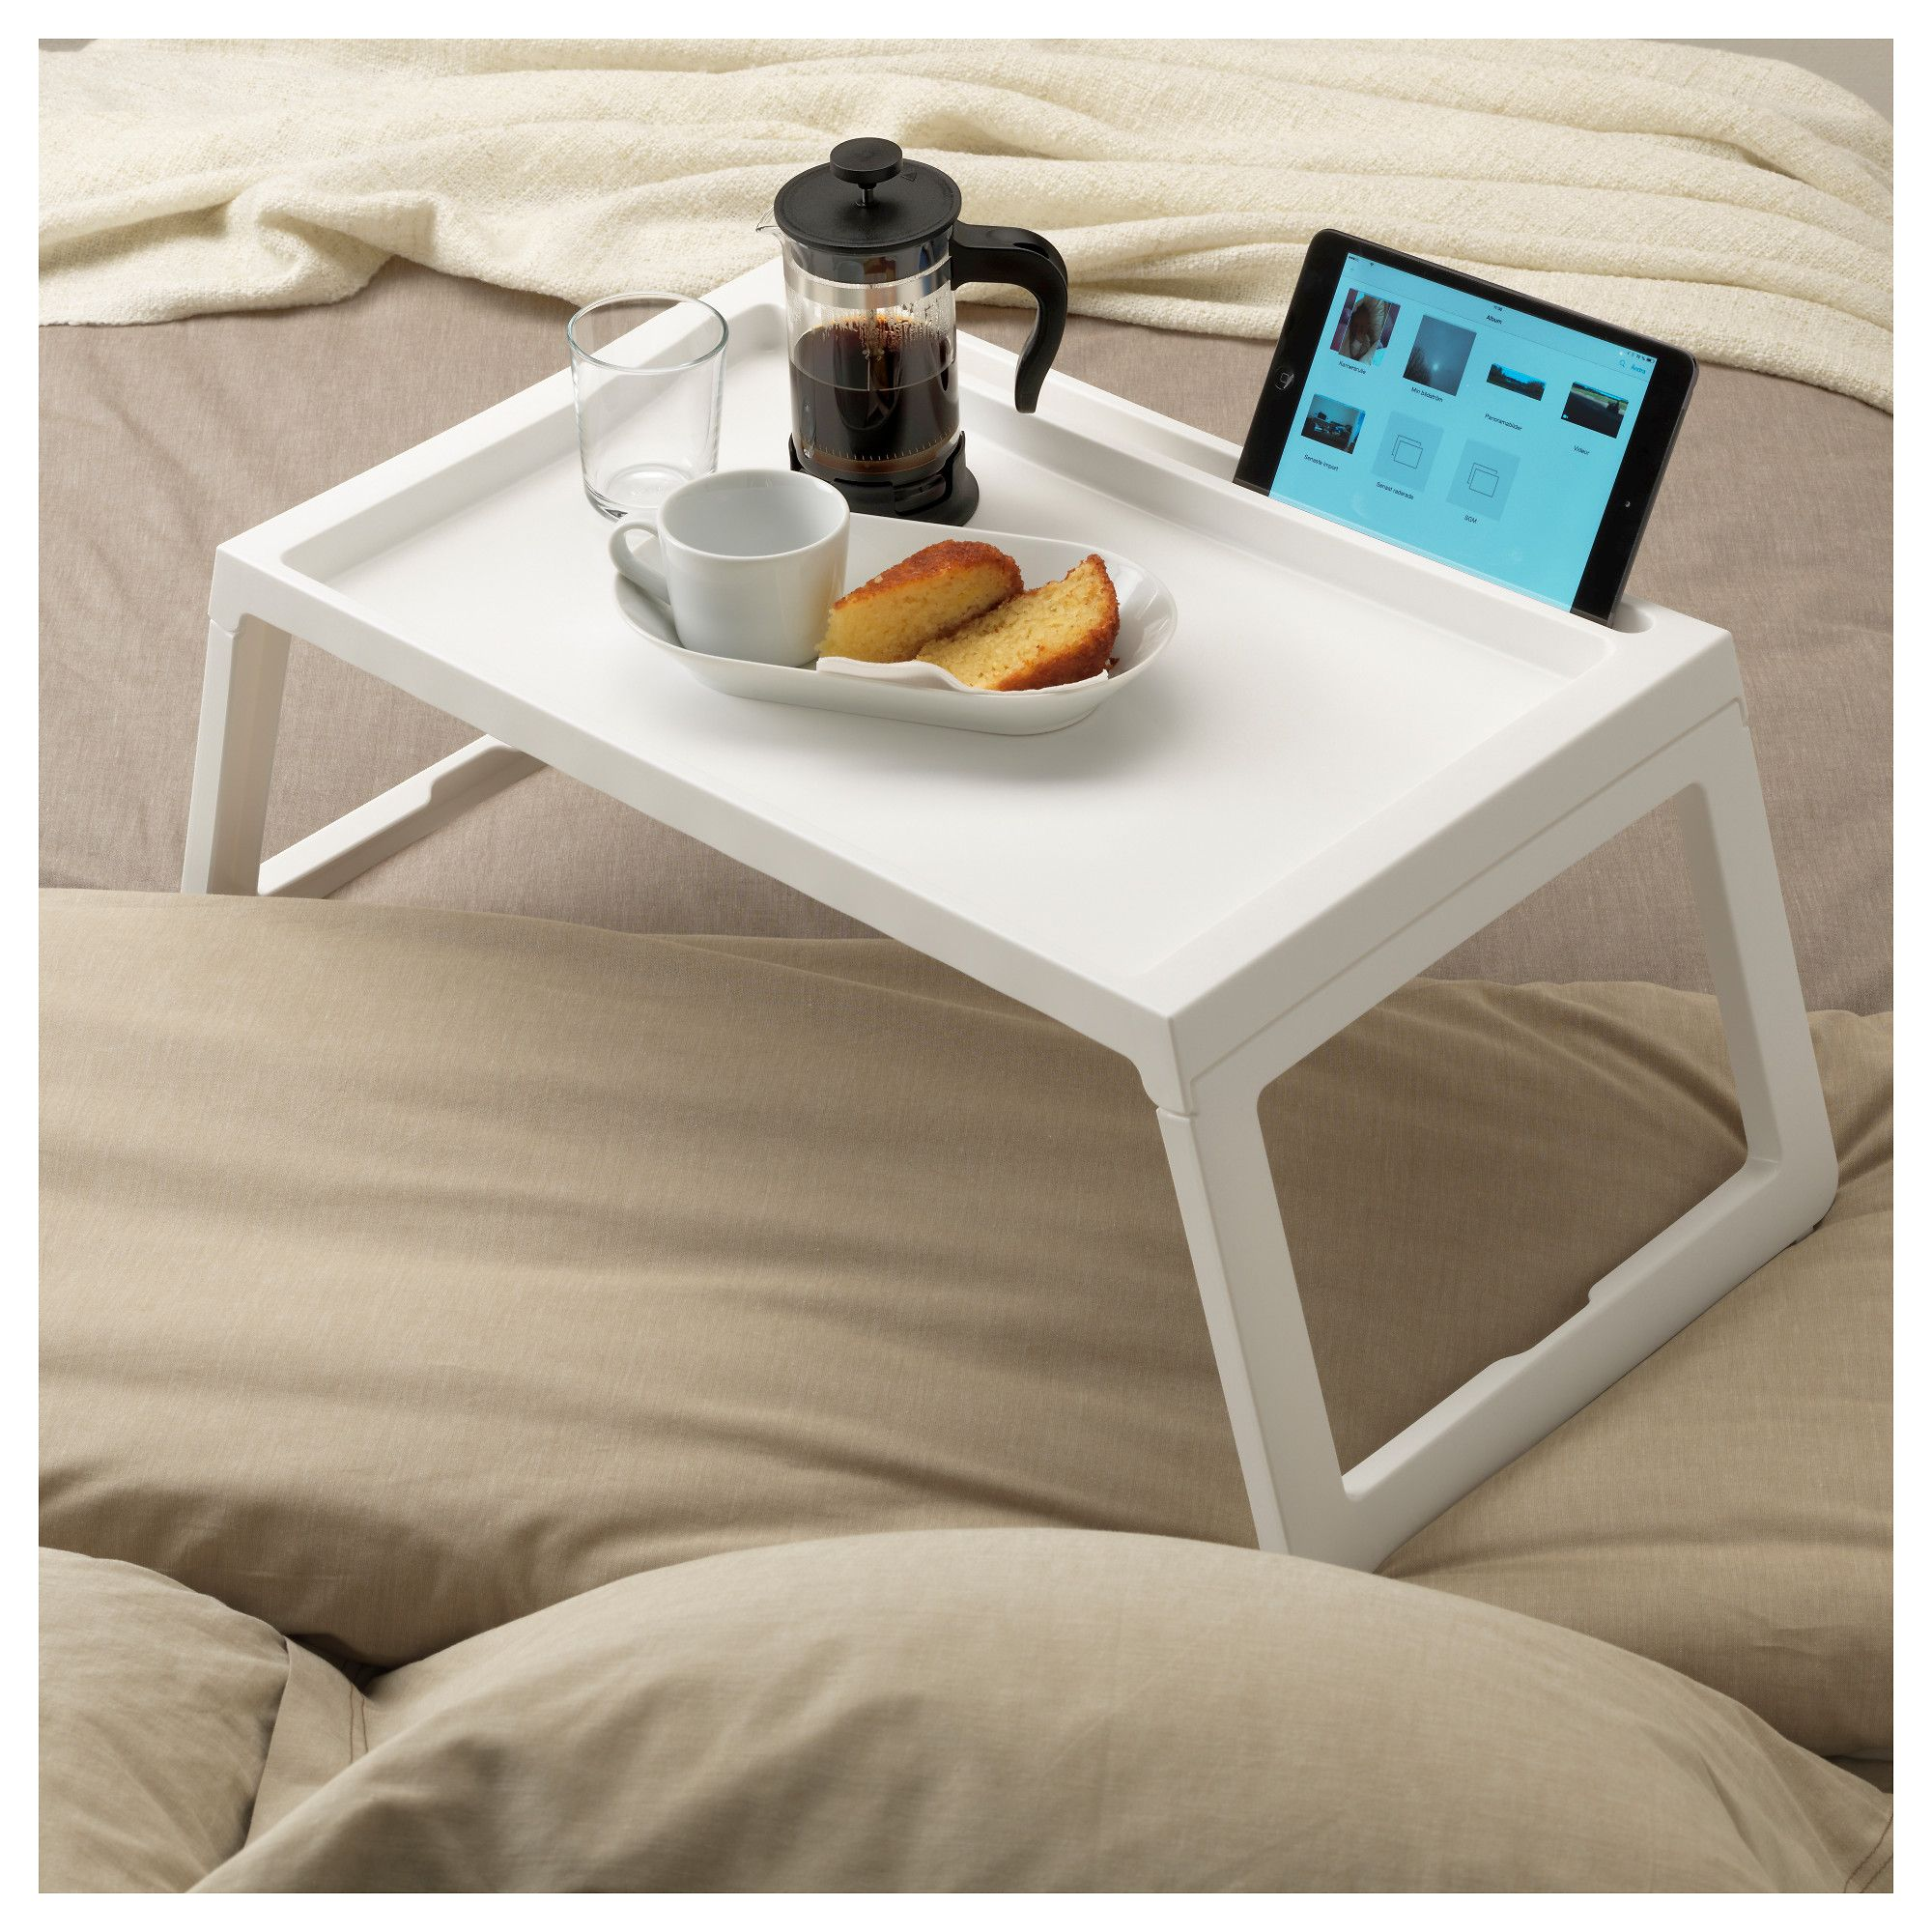 Dienblad Met Kussen Ikea Ikea Klipsk Bed Tray White Ikea Wishlist Bed Tray Table Bed